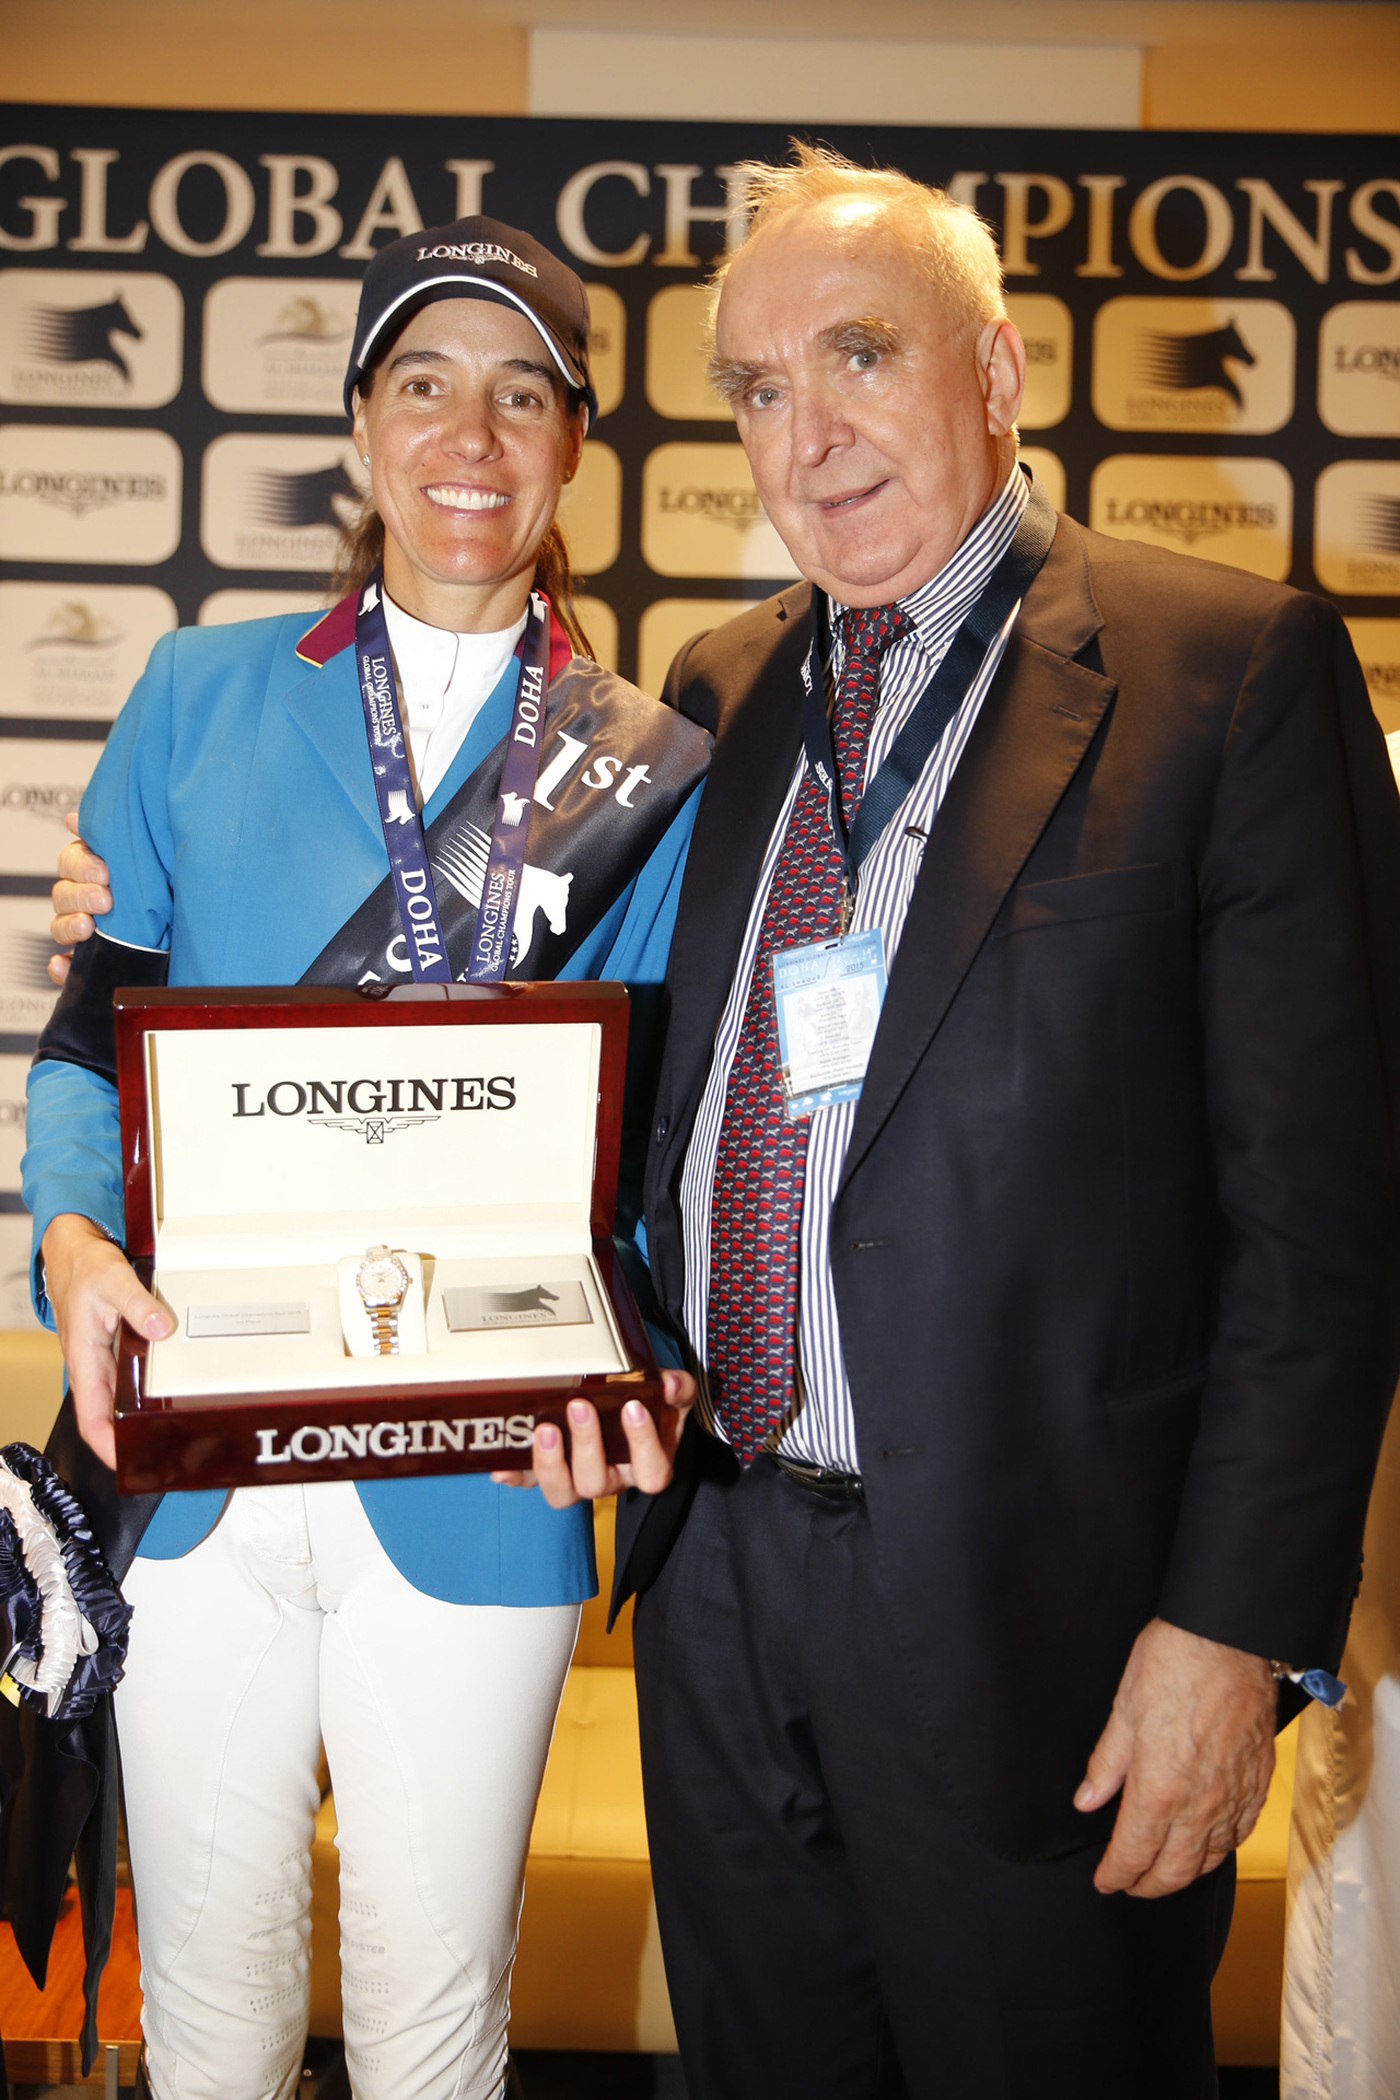 Longines Show Jumping Event: Doha hosts the finale of the 2015 Longines Global Champions Tour 6